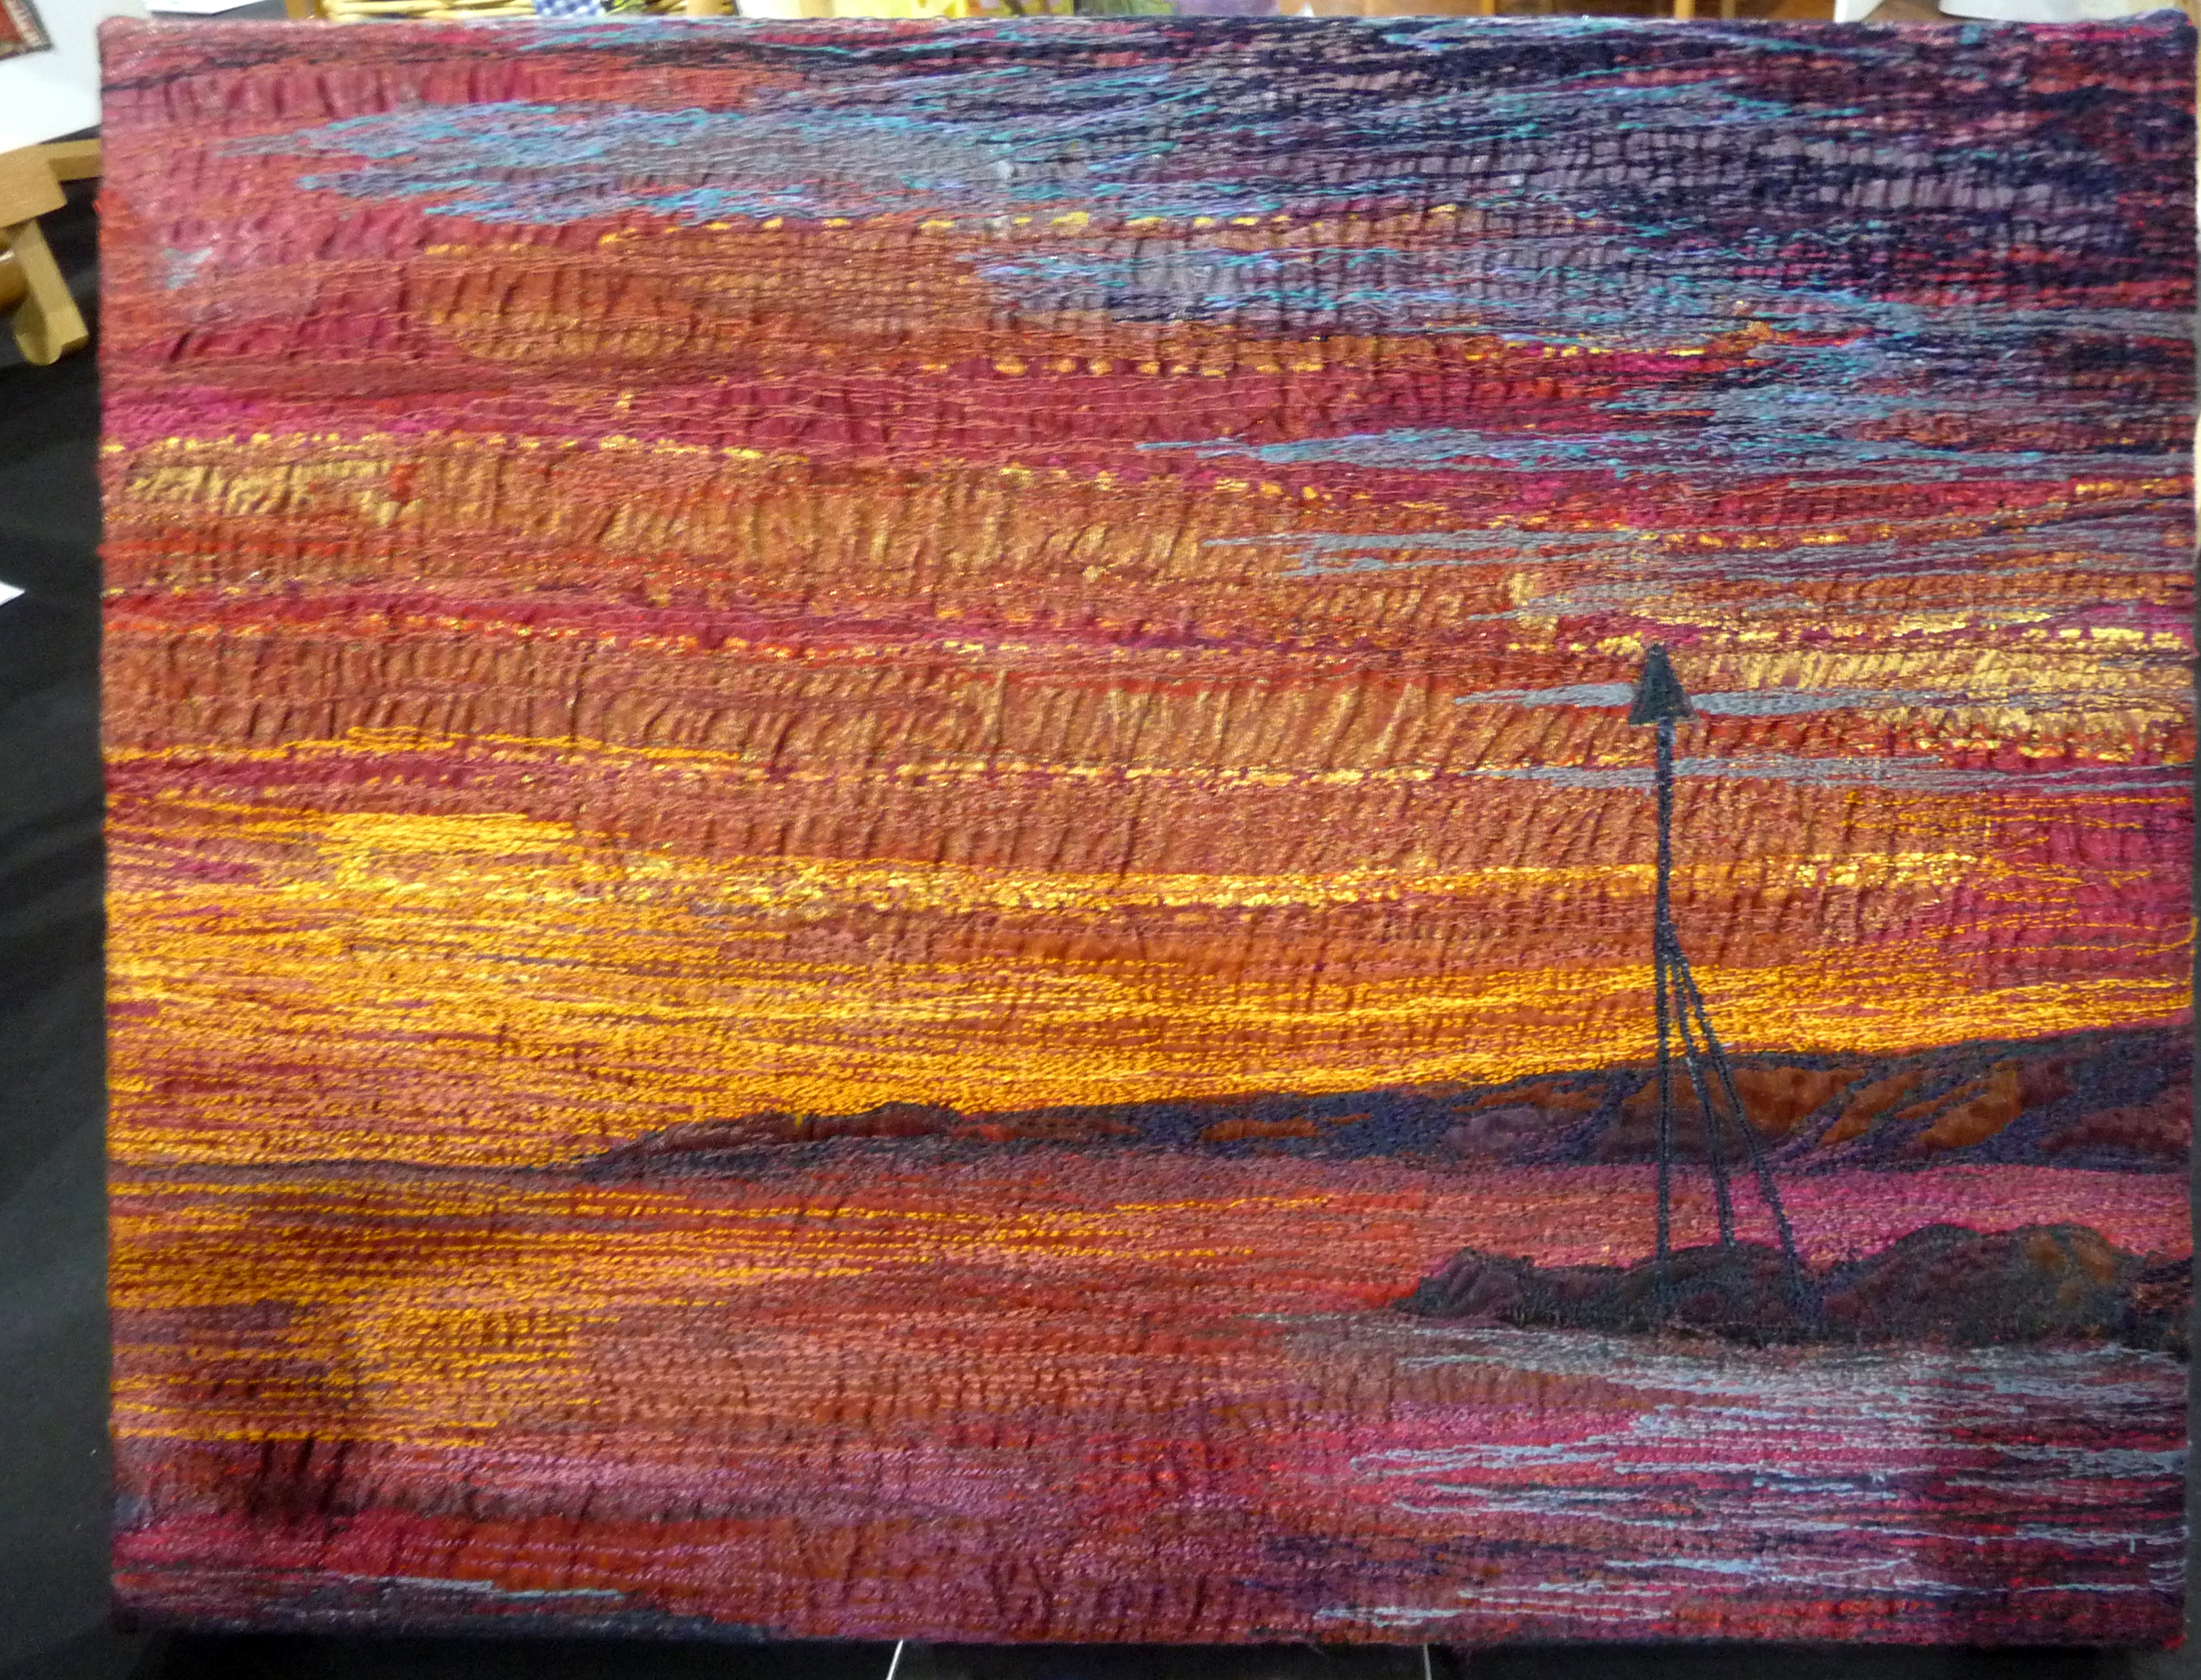 SUNSET COLWYN BAY, Wild & Wacky, by Pauline Foster, free machine embroidered recycled fabrics